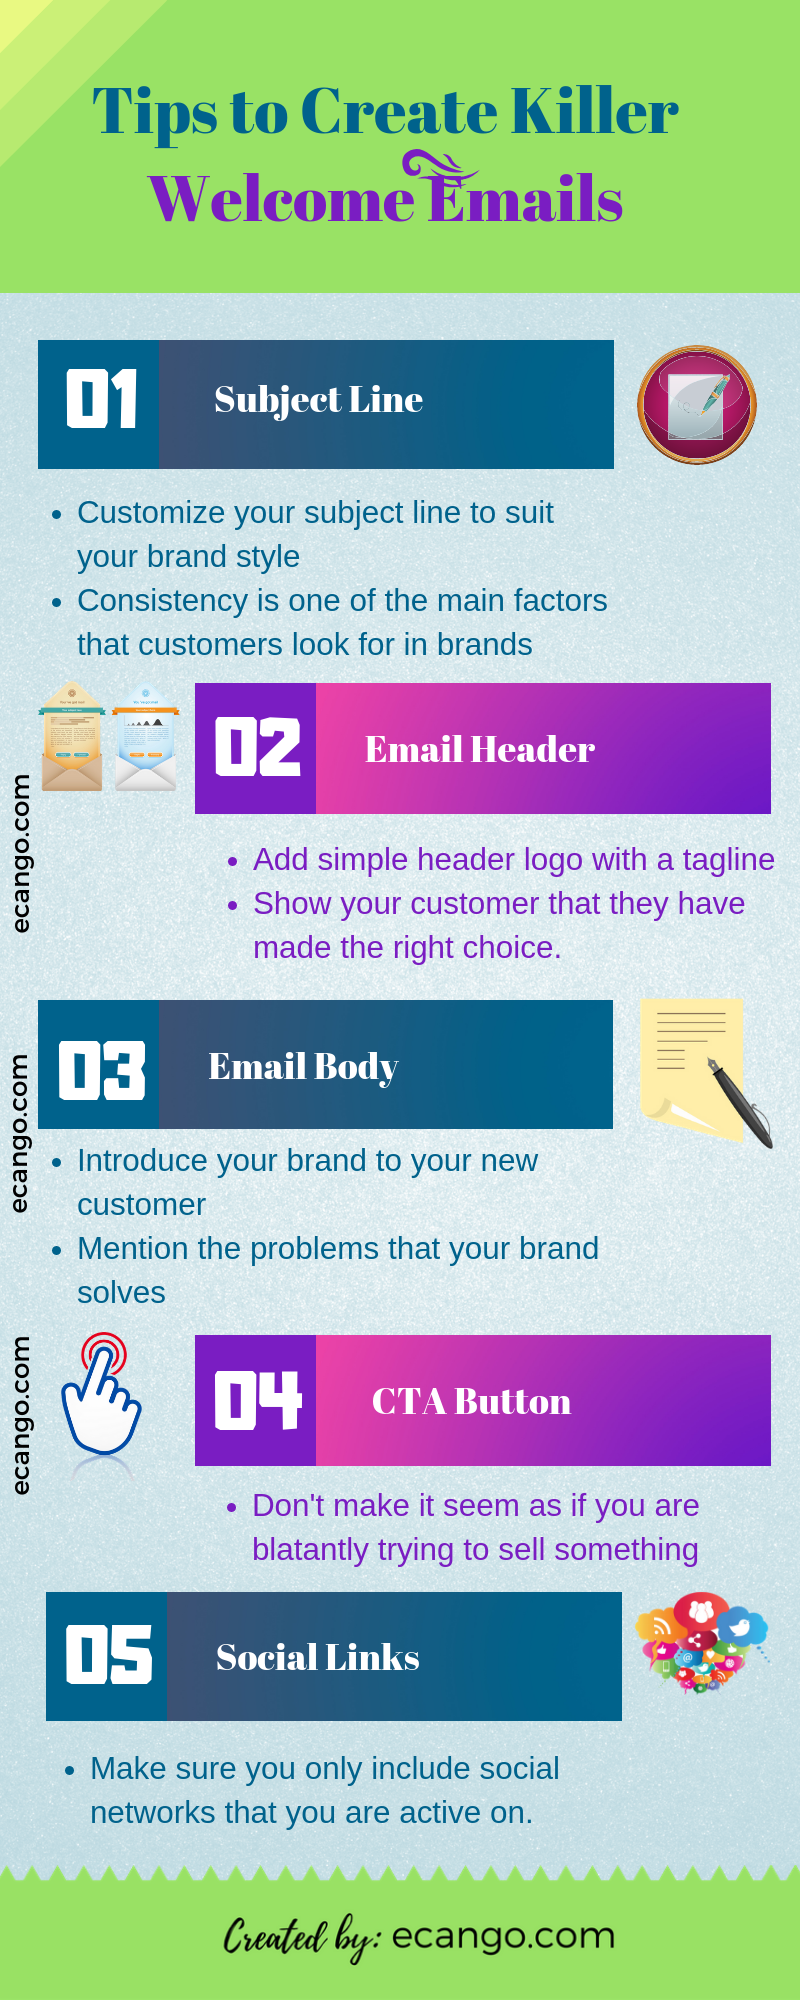 Create killer welcome emails-How to